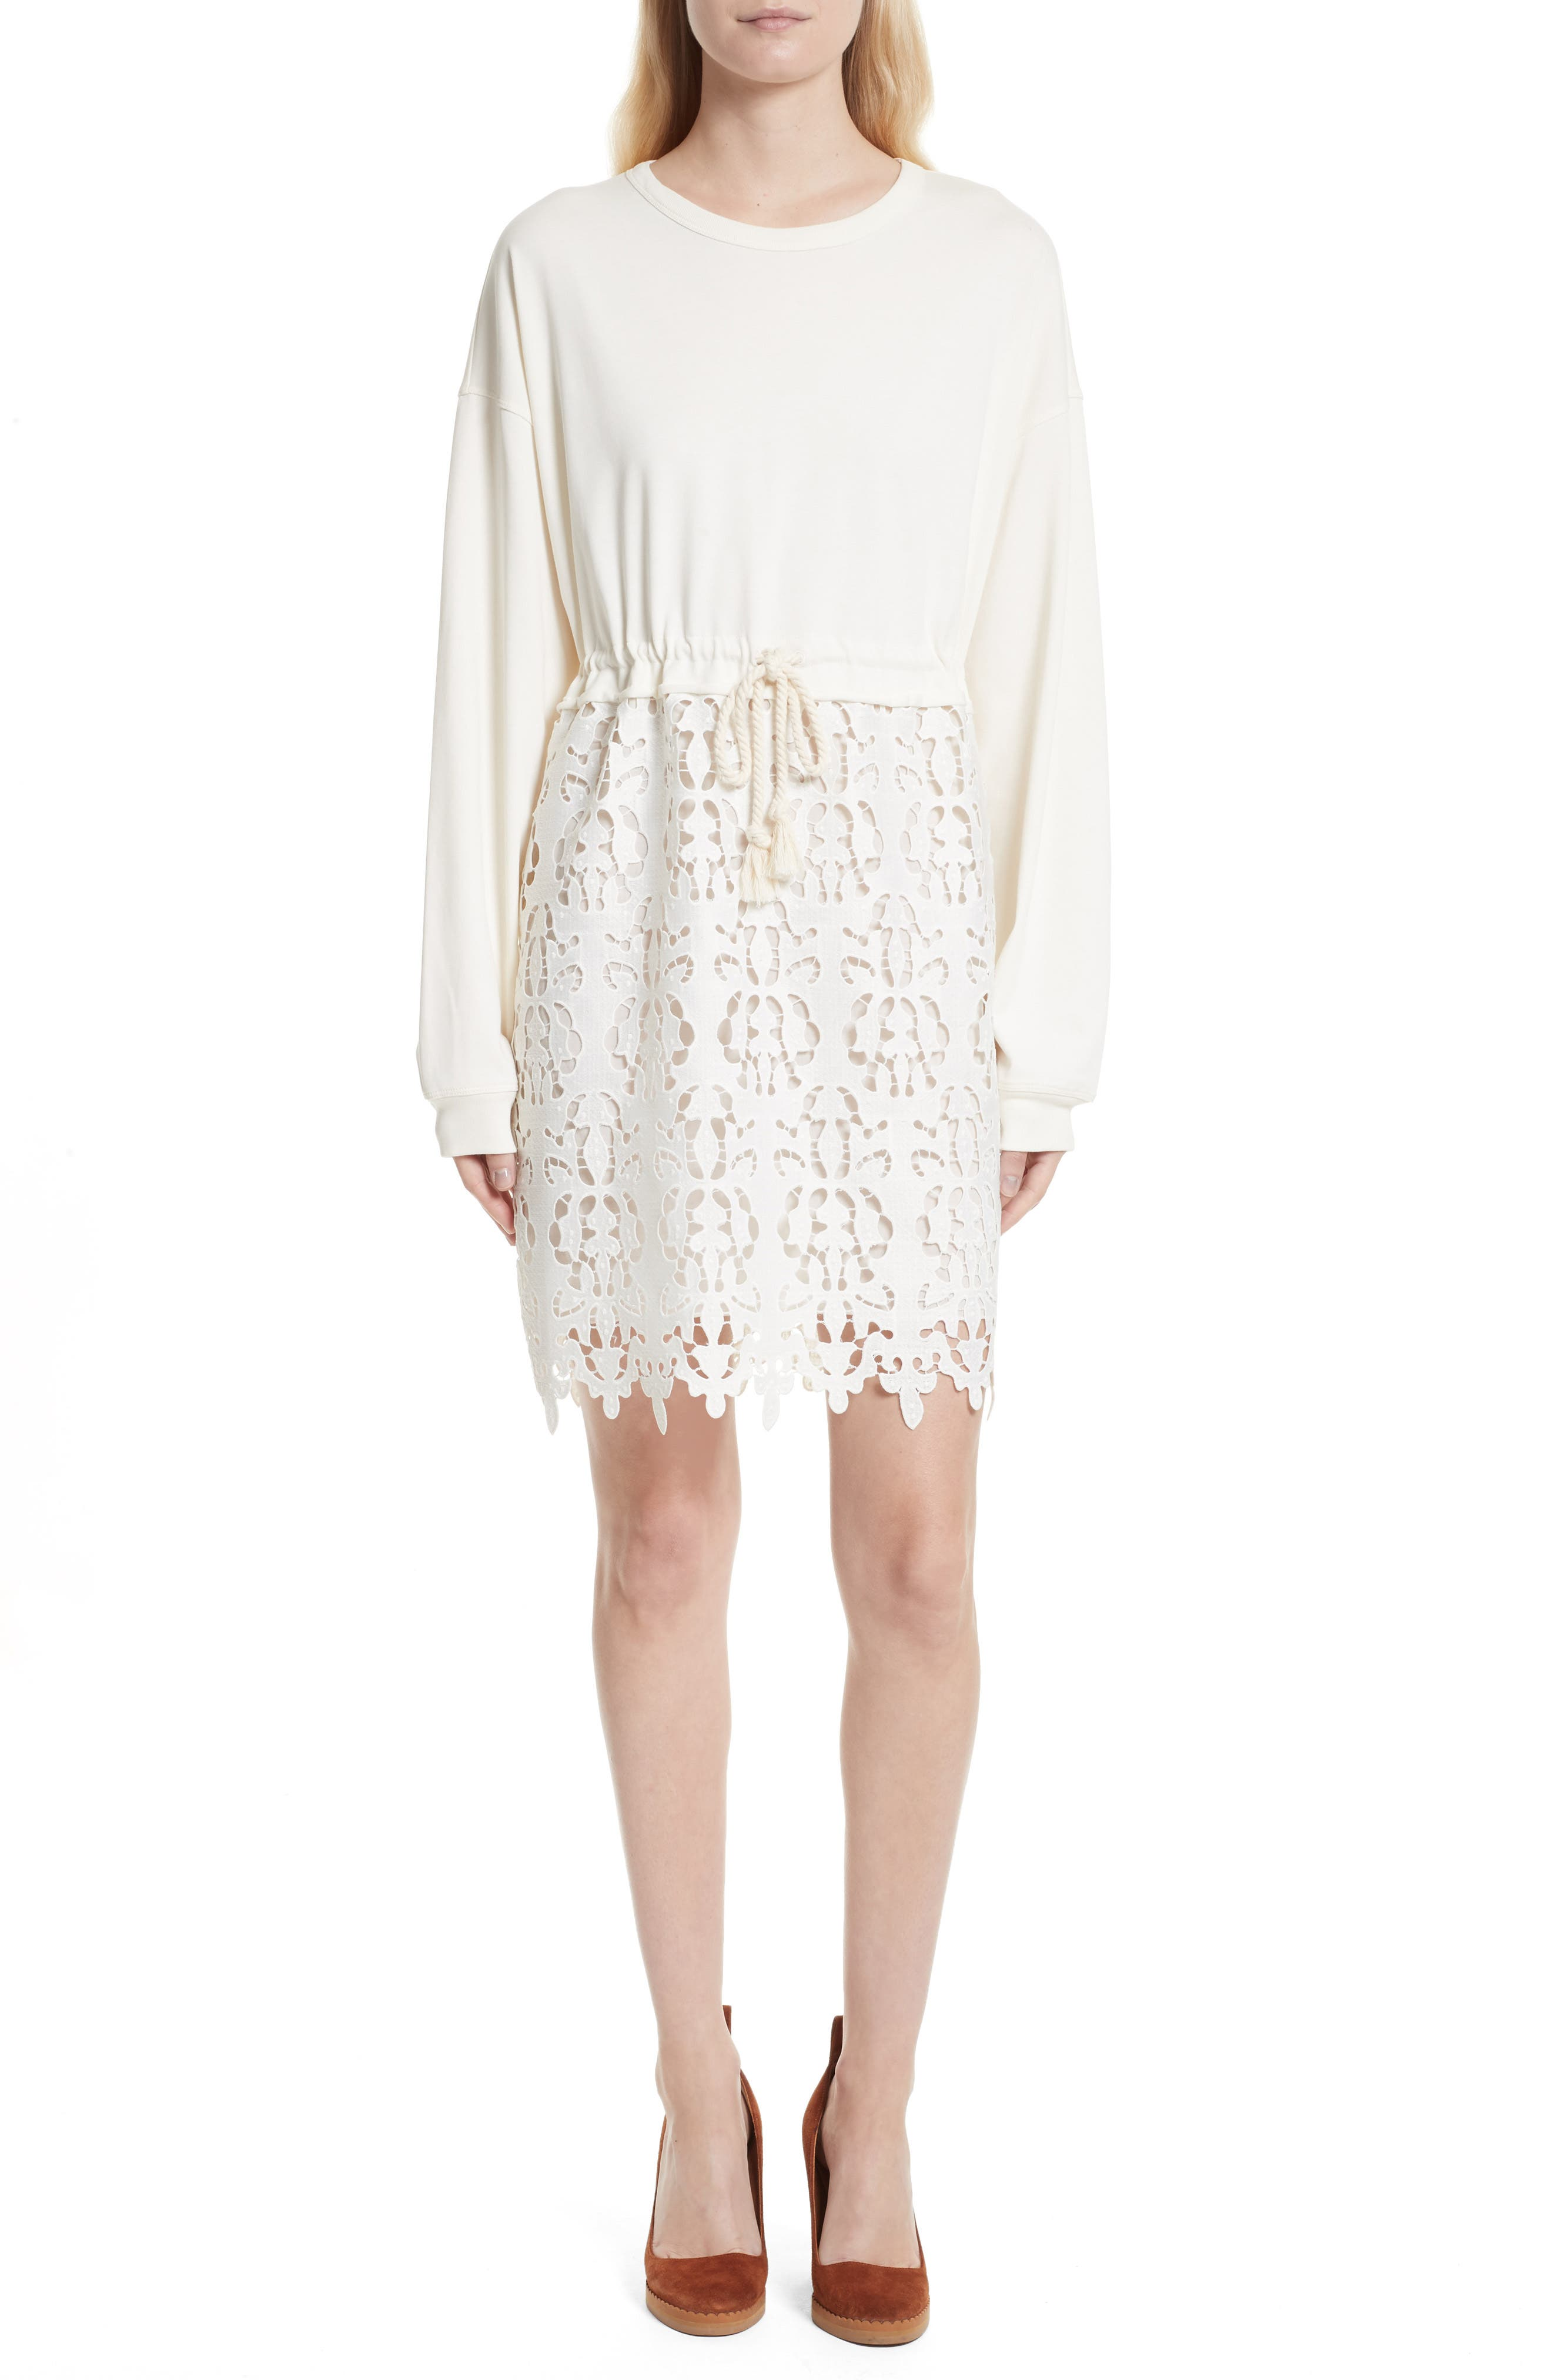 SEE BY CHLOÉ Lace Skirt Sweatshirt Dress, Main, color, 101